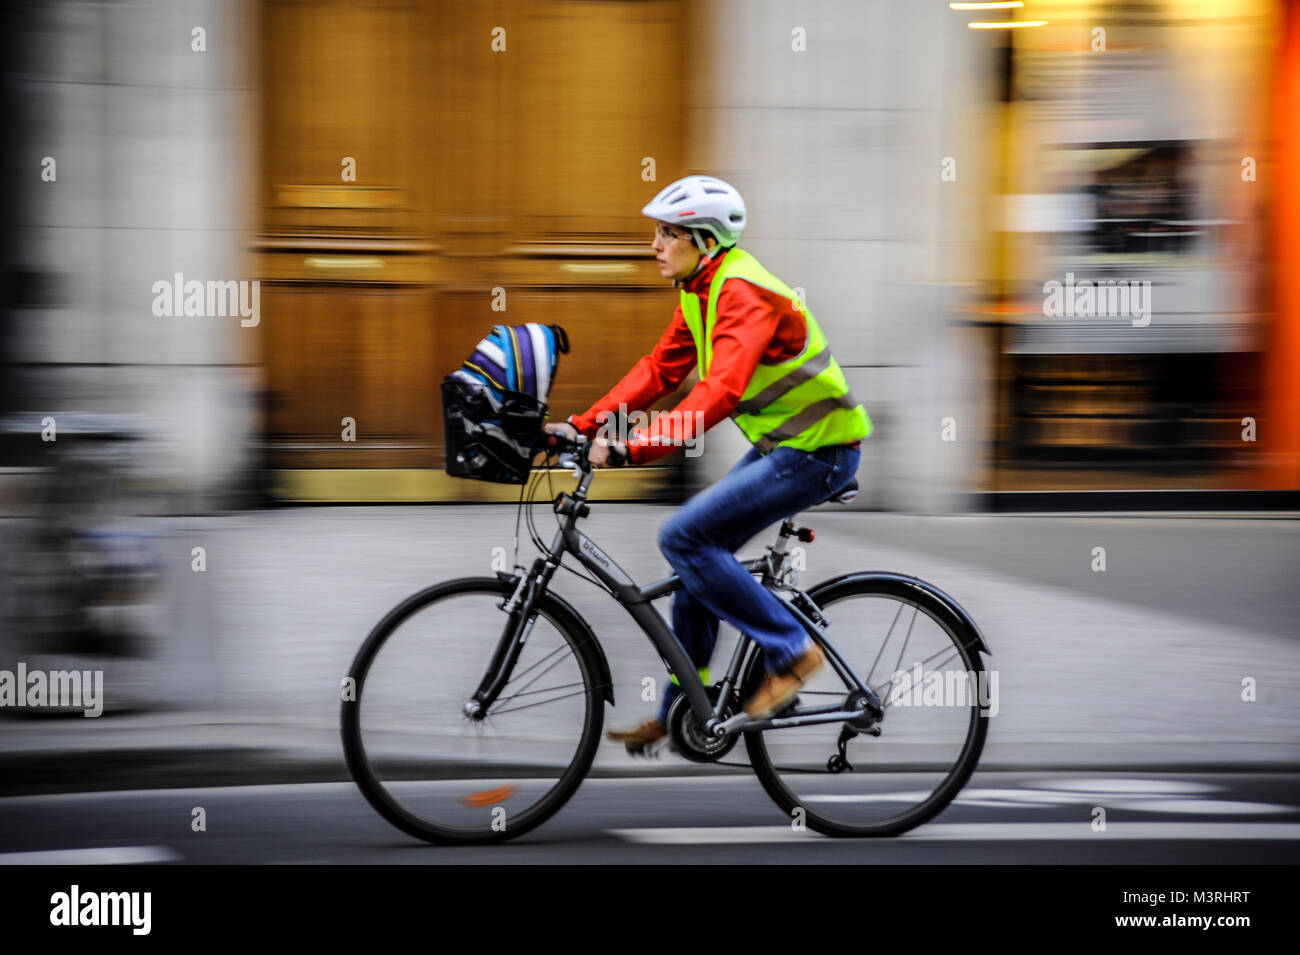 PARIS FRANCE - WOMAN ON BICYCLE DRESSED WITH A HELMET AND A SAFETY VEST PASSING BY RUE DE RENNES - PARIS BICYCLE - Stock Image